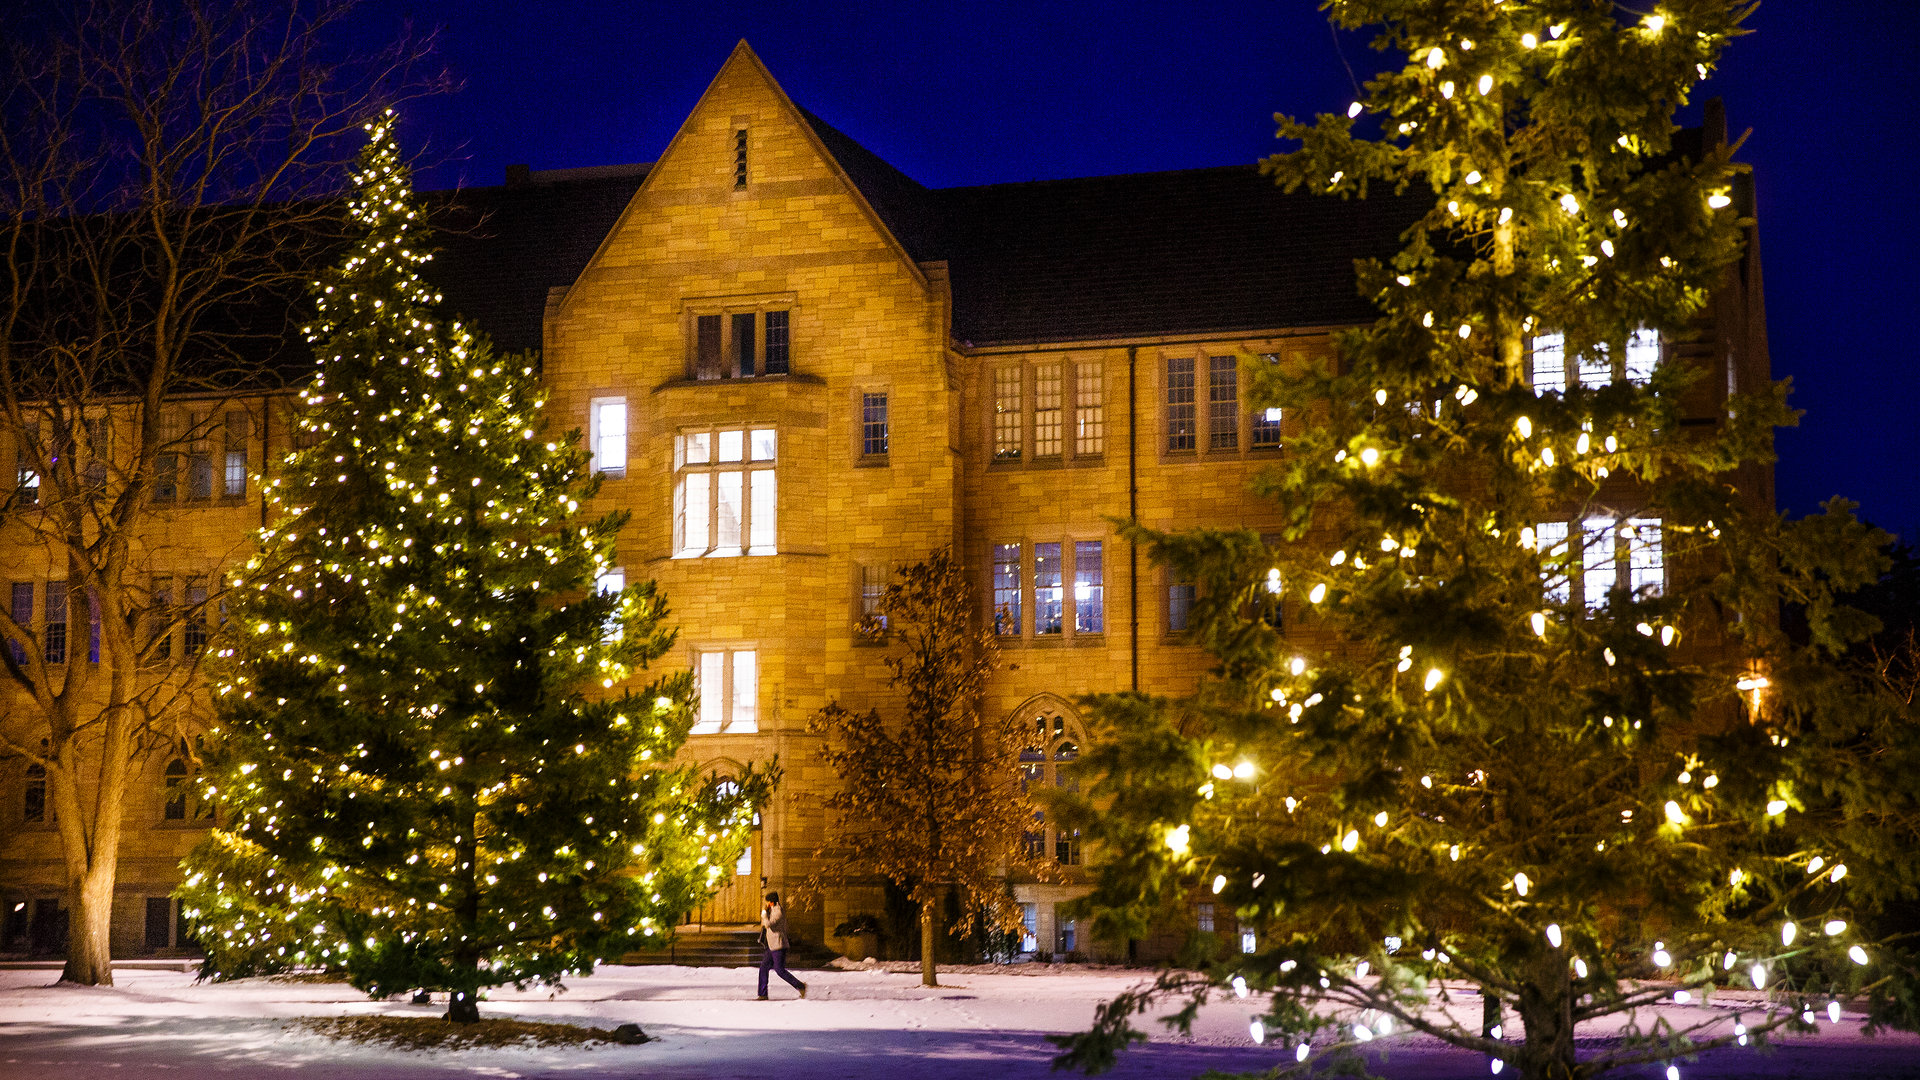 trees in the lower quad are lit up for the Christmas season